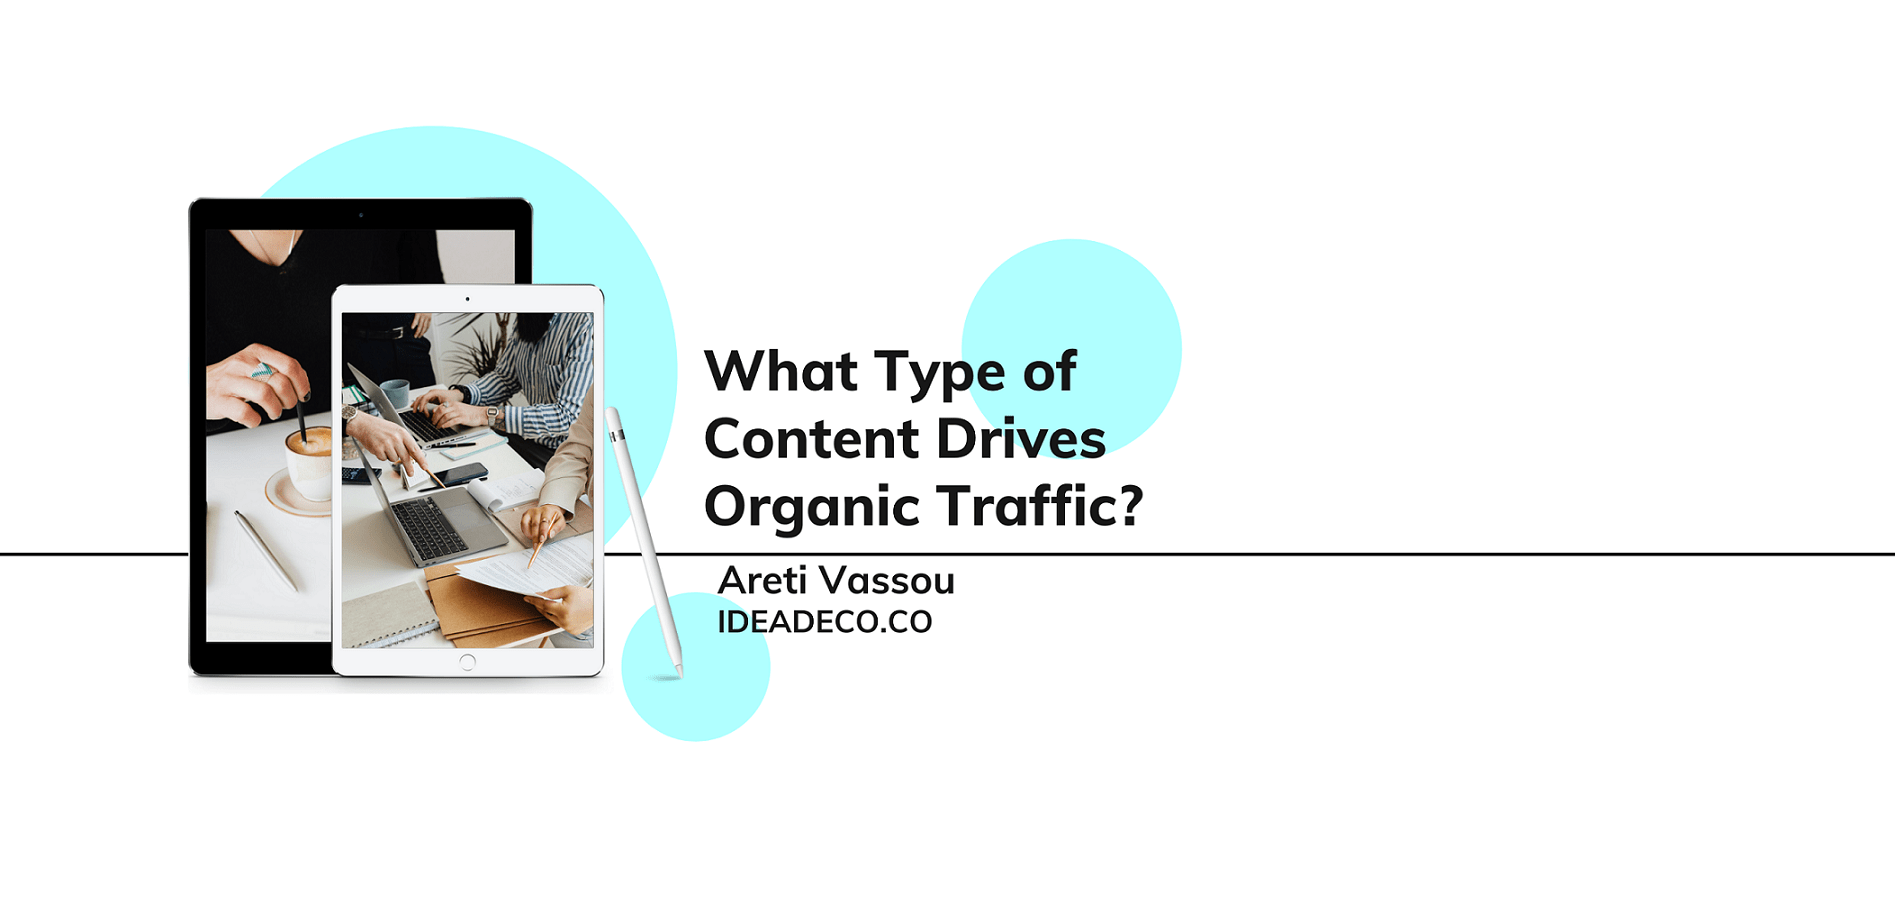 What Type of Content Drives Organic Traffic?